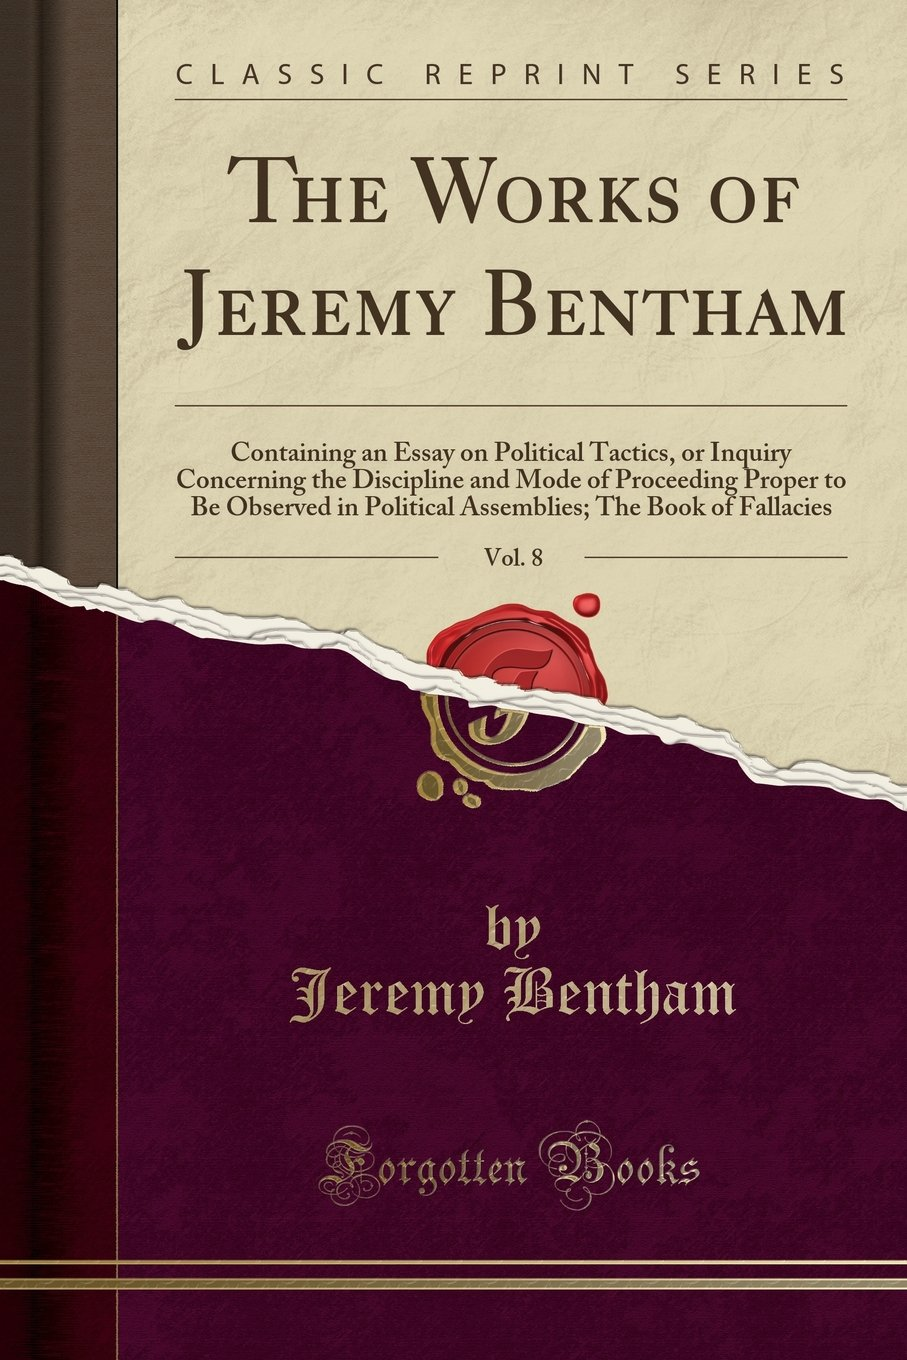 Download The Works of Jeremy Bentham, Vol. 8: Containing an Essay on Political Tactics, or Inquiry Concerning the Discipline and Mode of Proceeding Proper to ... The Book of Fallacies (Classic Reprint) ebook